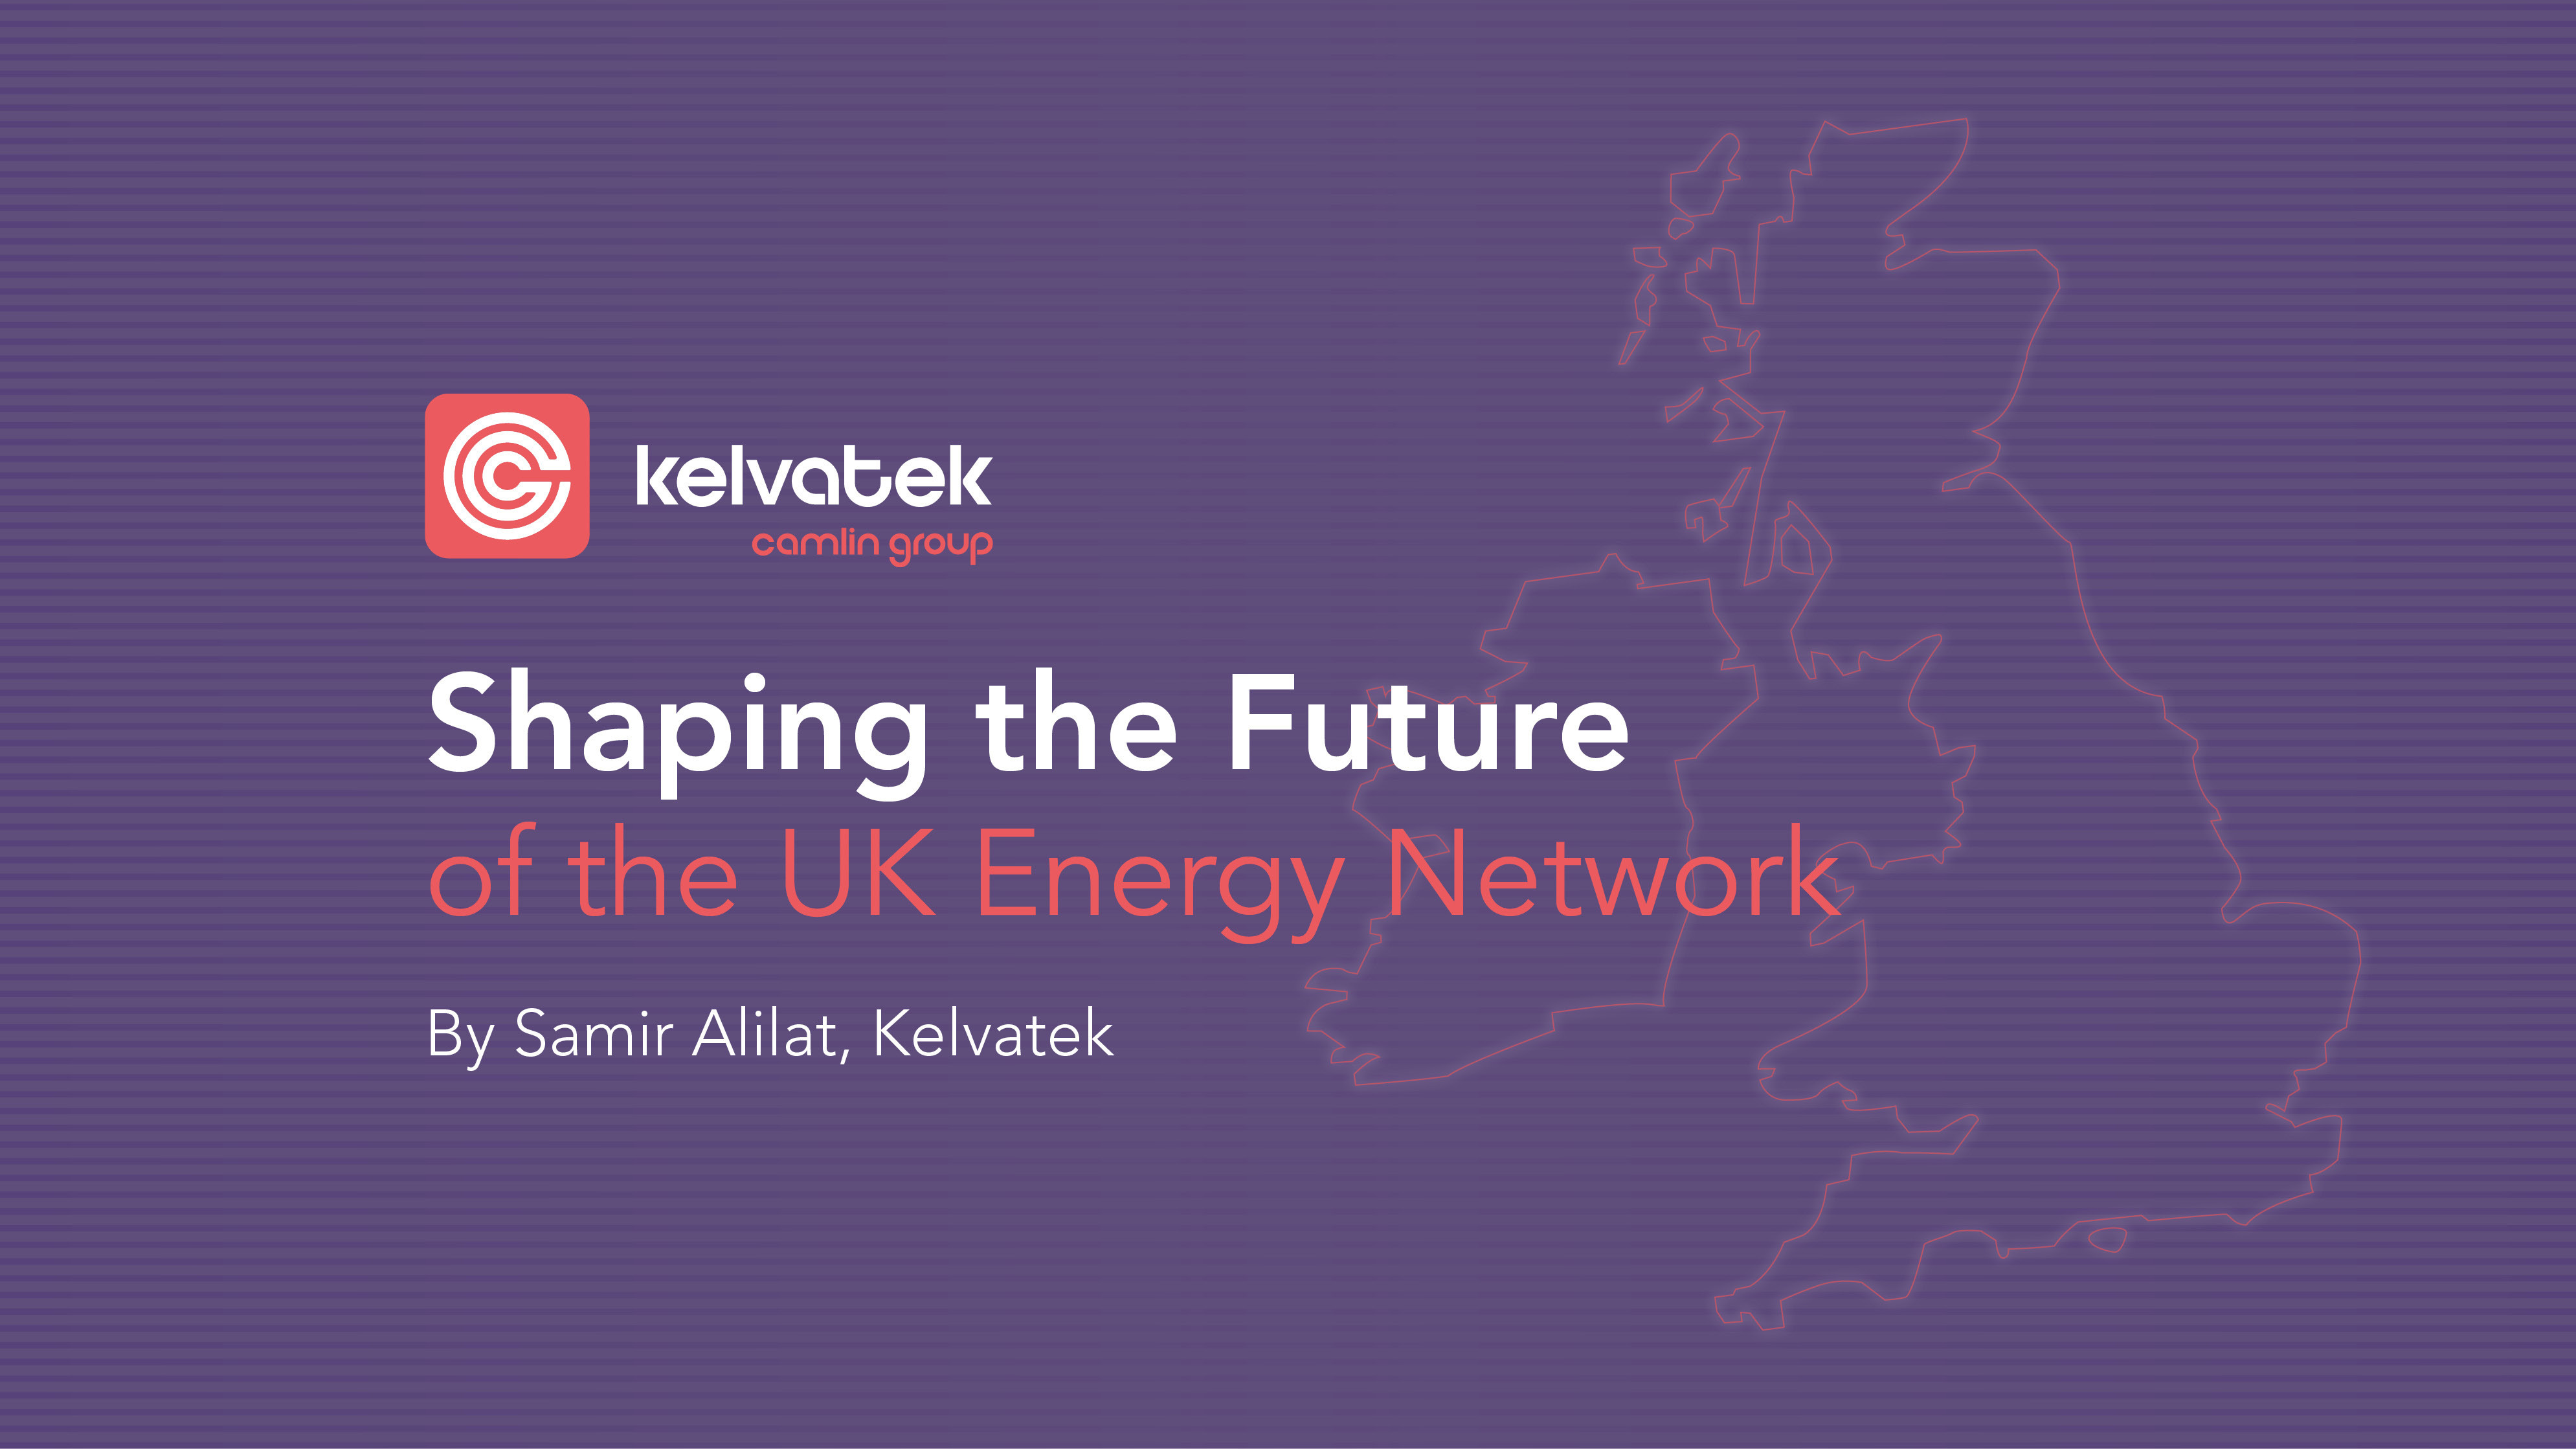 Shaping the Future of the UK Energy Network